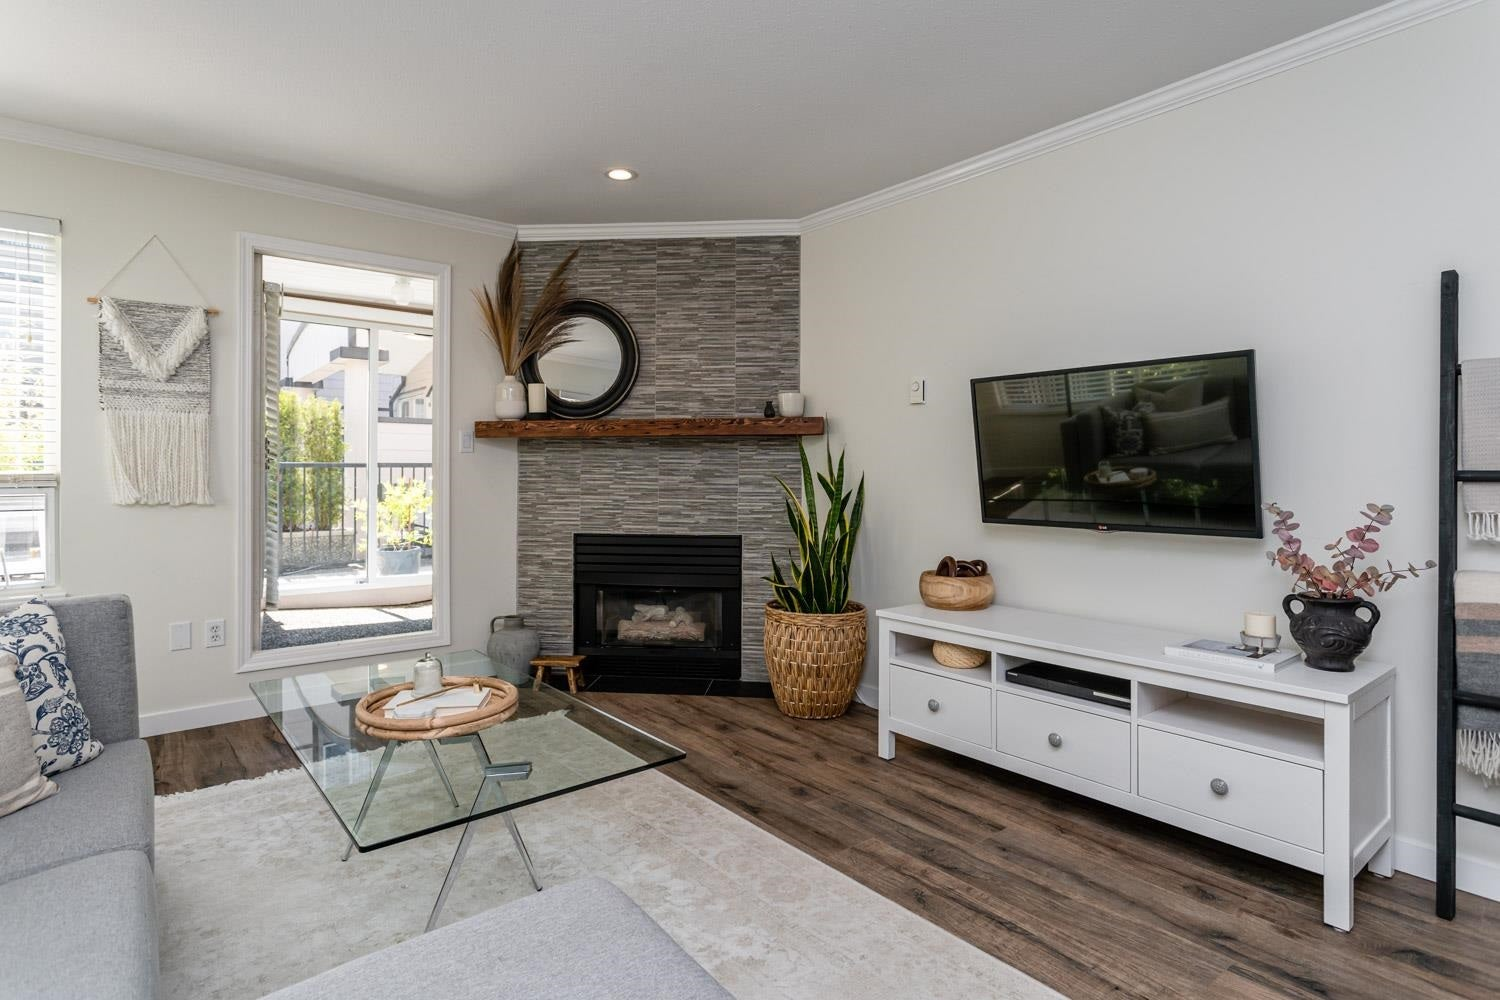 112 1533 BEST STREET - White Rock Apartment/Condo for sale, 2 Bedrooms (R2603851)